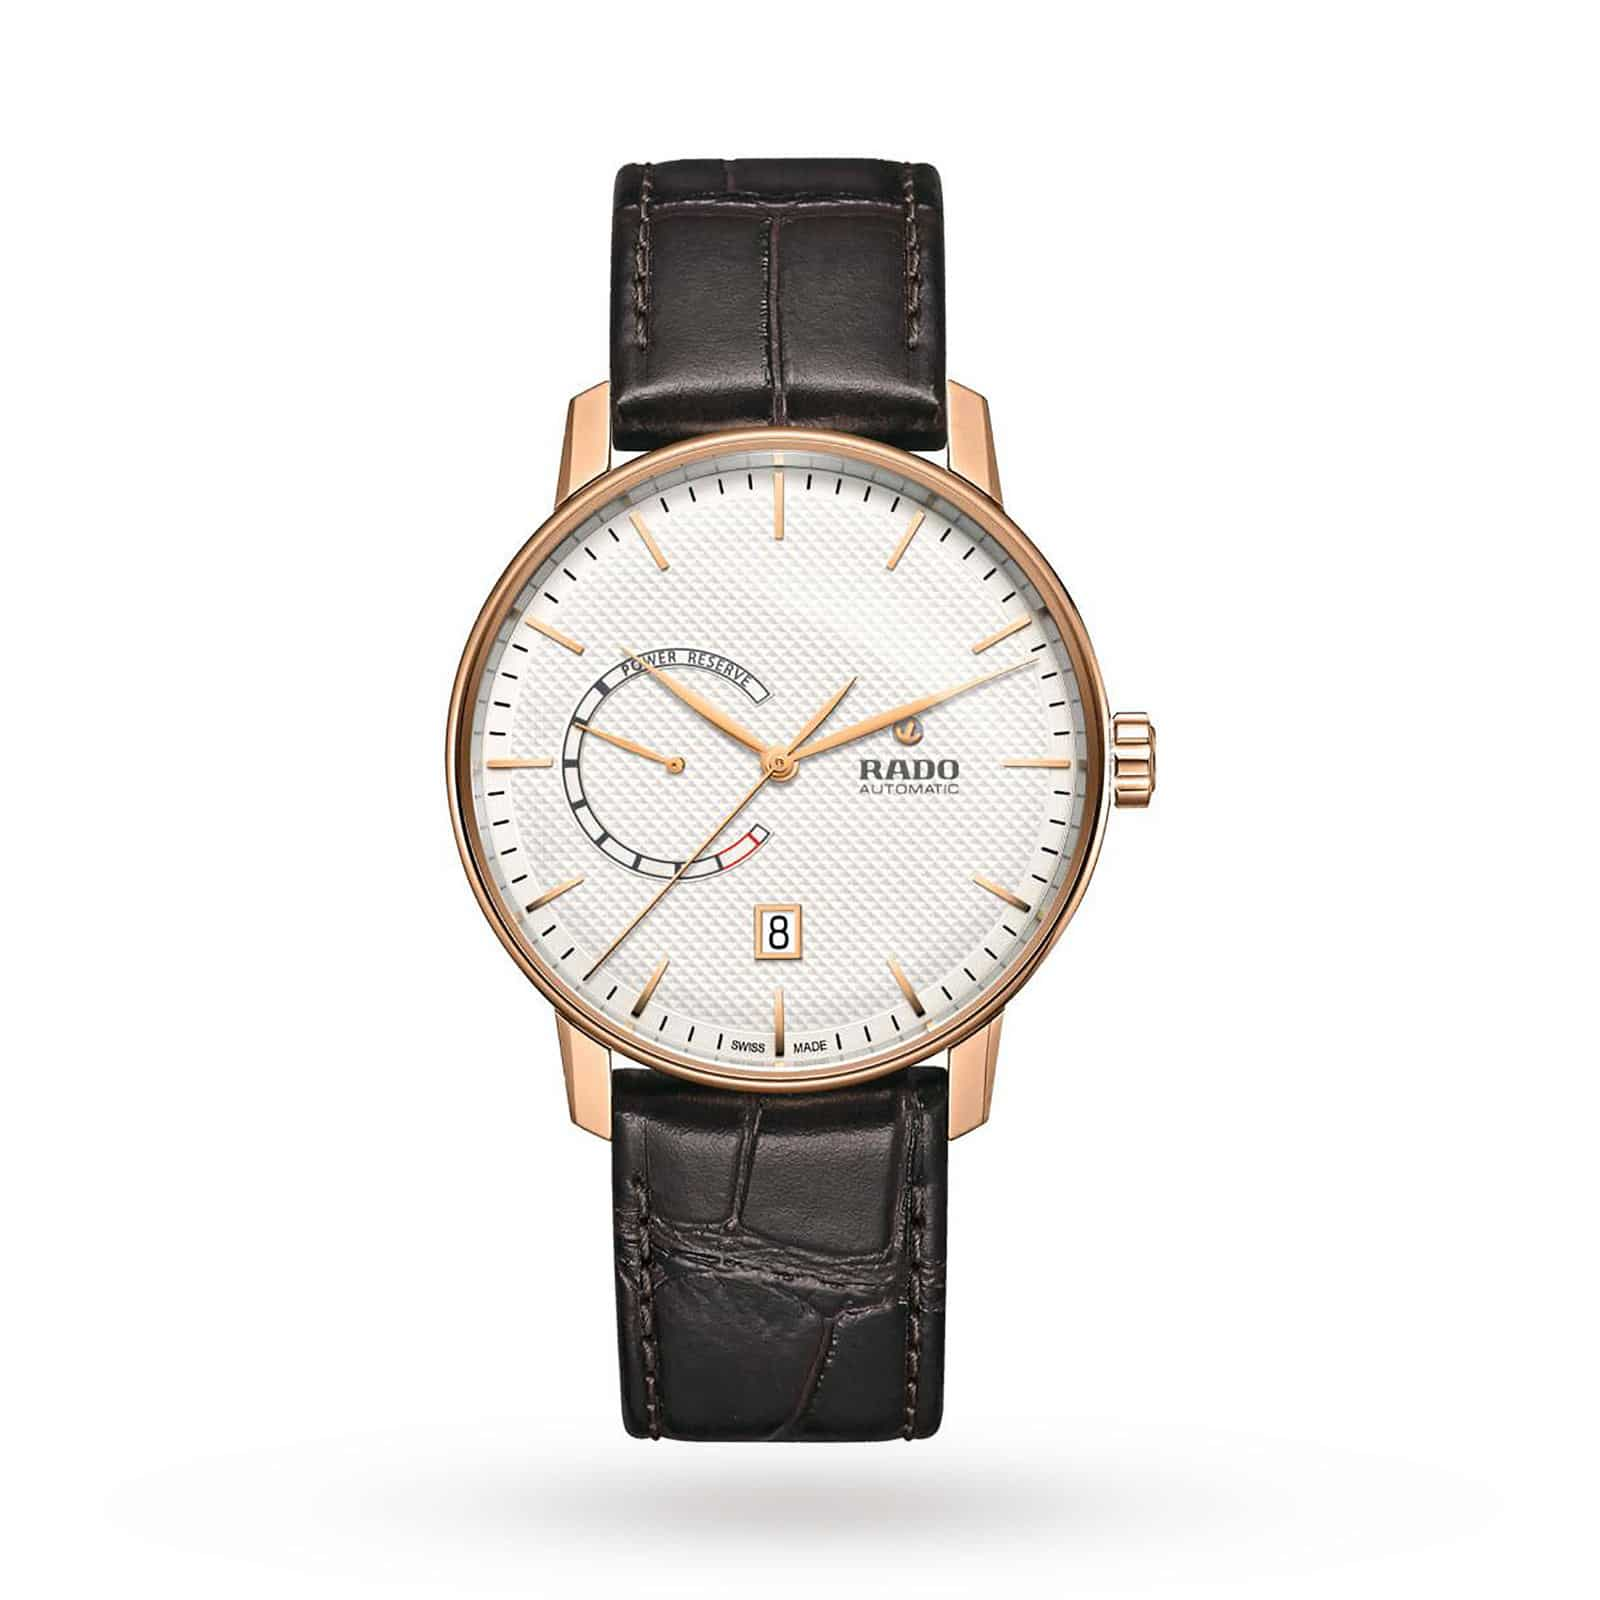 Rado mens watch with leather strap